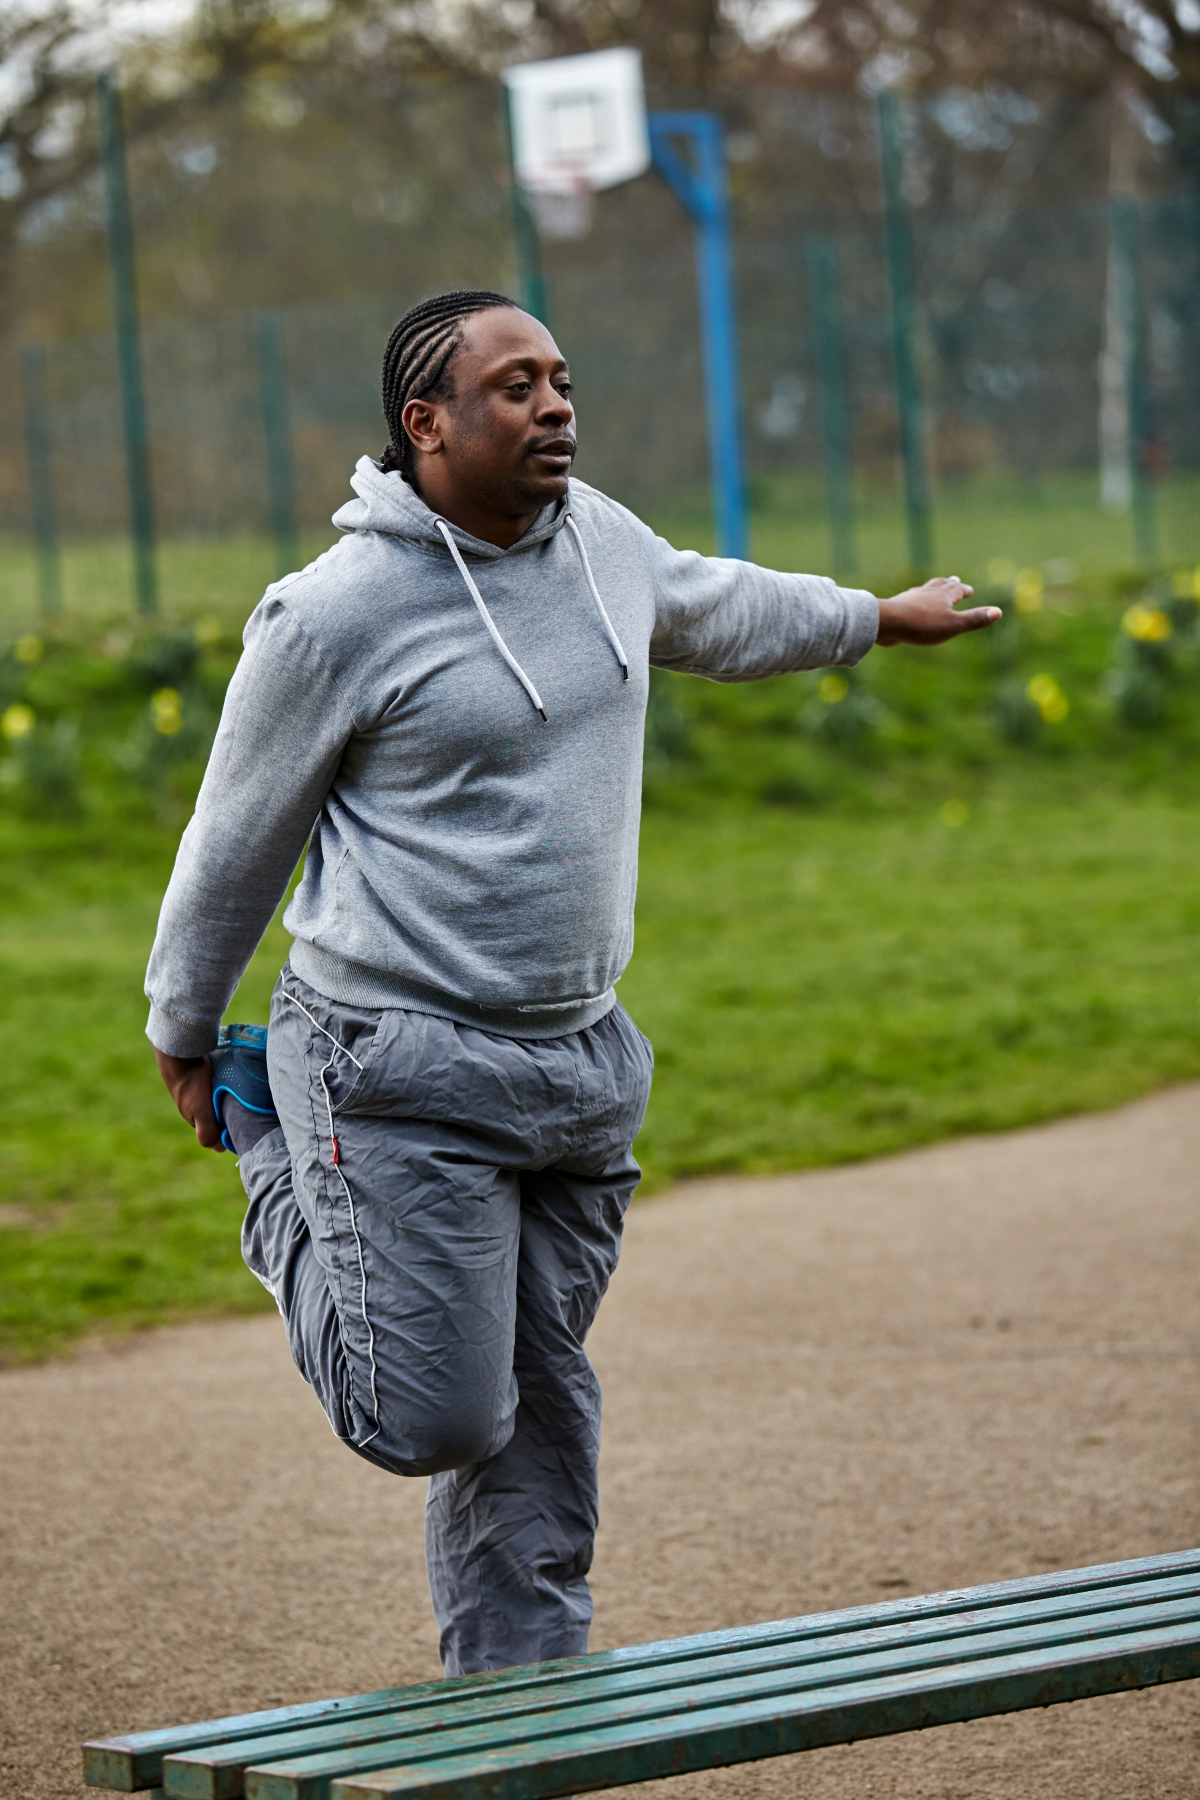 Man exercising in park